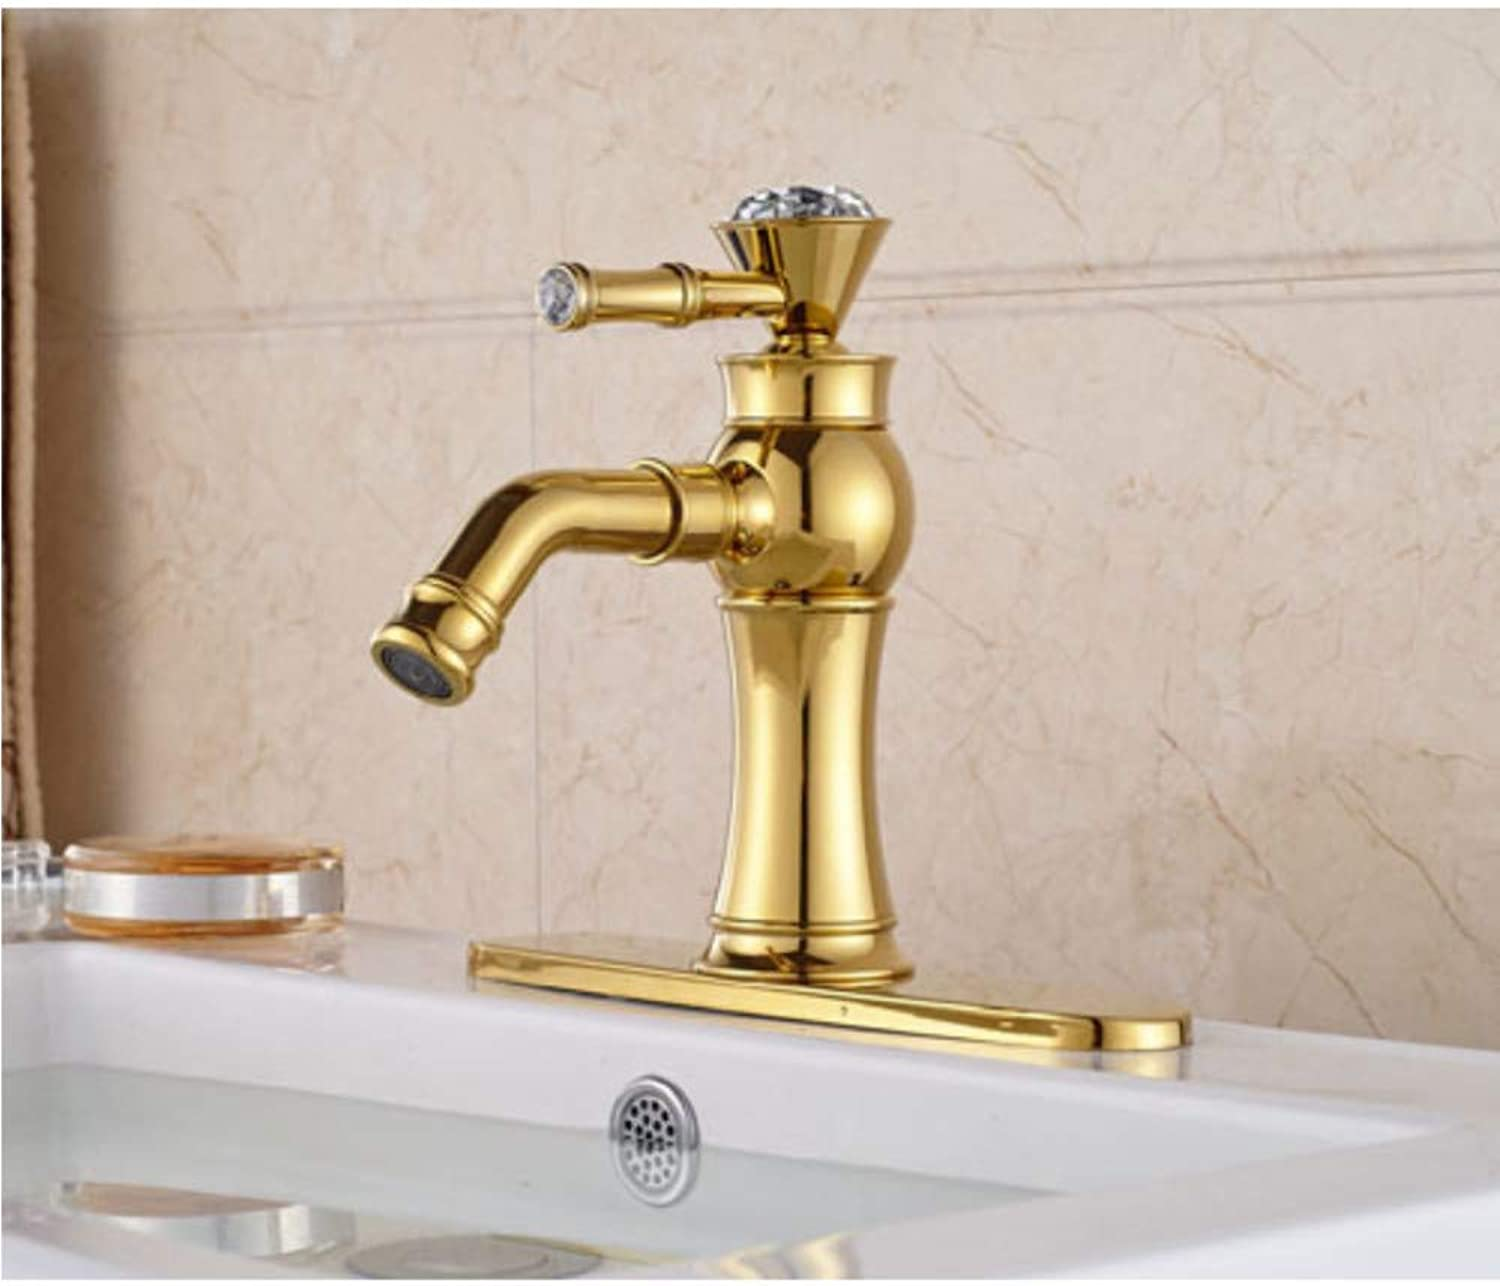 Water Tap Luxury Crystal gold Brass Waterfall Spout Single Lever Batrhroom Sink Basin Faucet Mixer Tap with Cover Plate